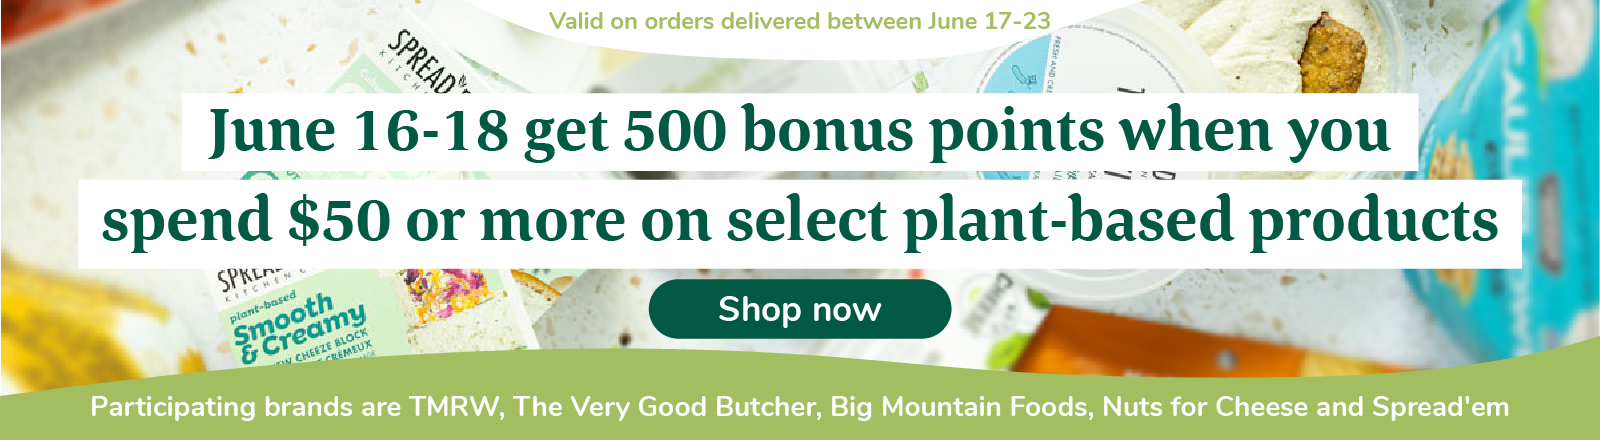 Get points when you spend $50 on select plant-based products